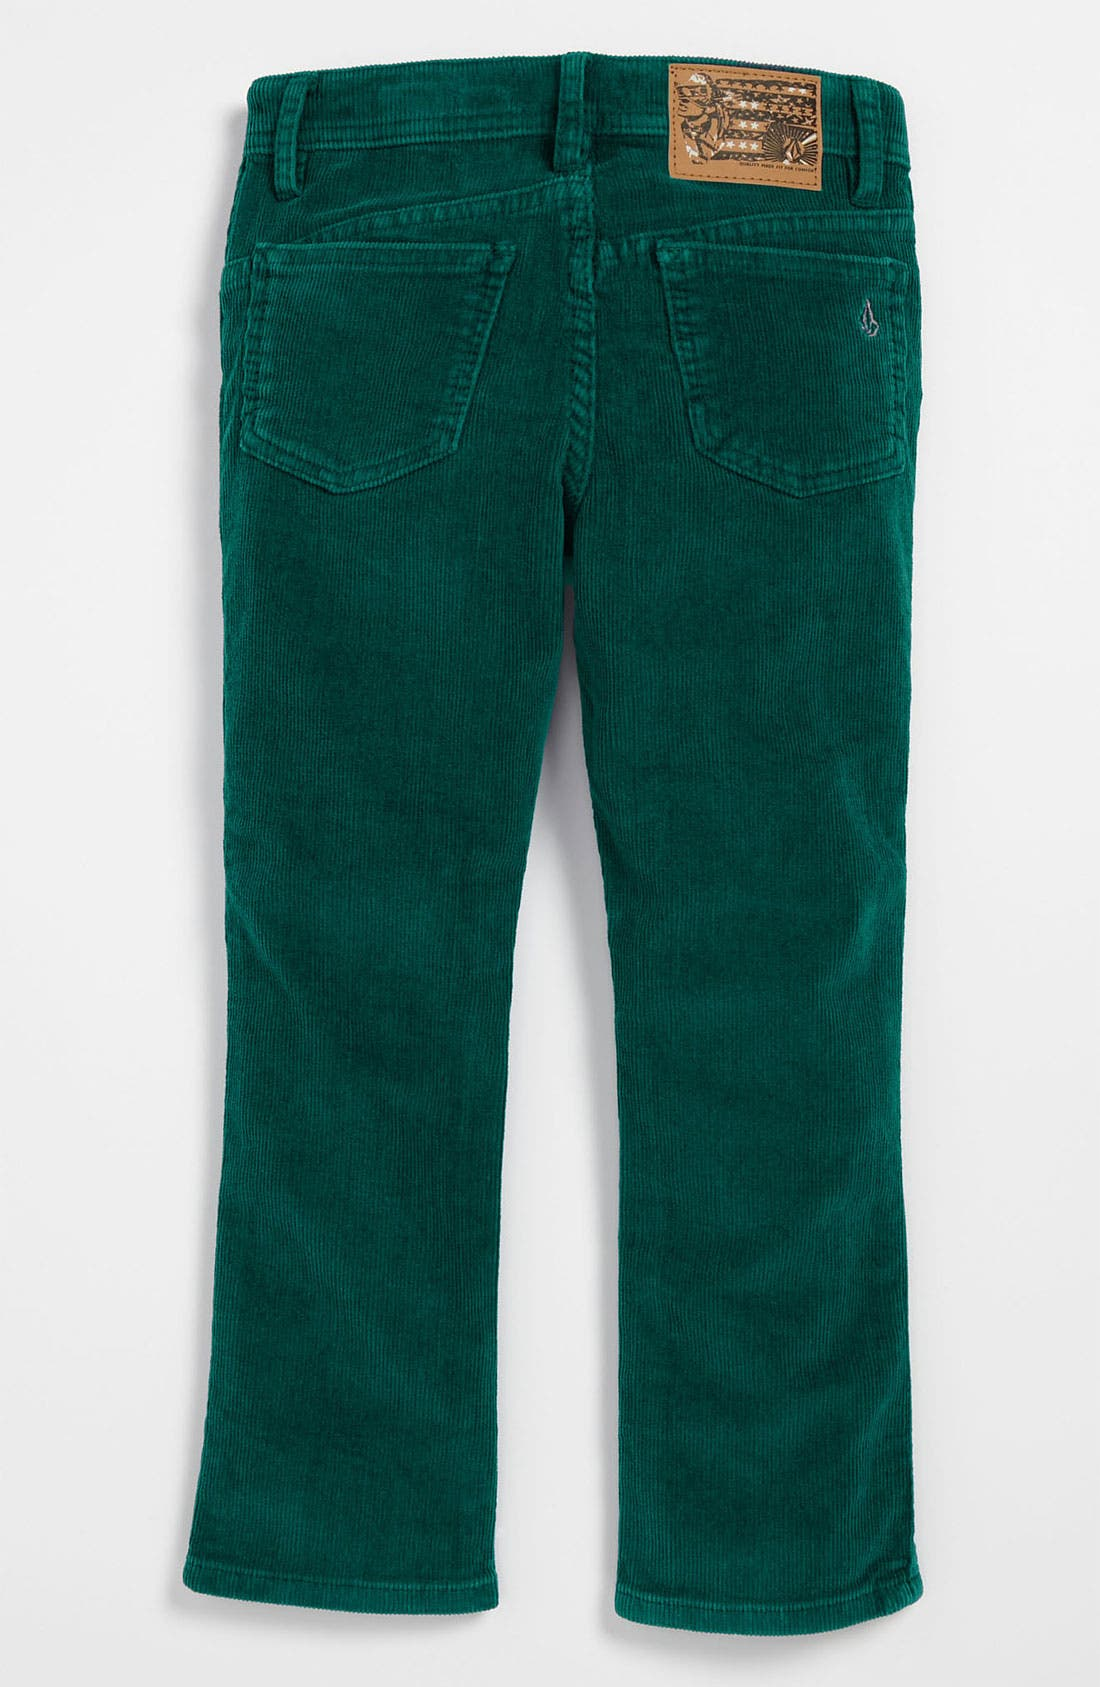 Main Image - Volcom Corduroy Pants (Big Boys)